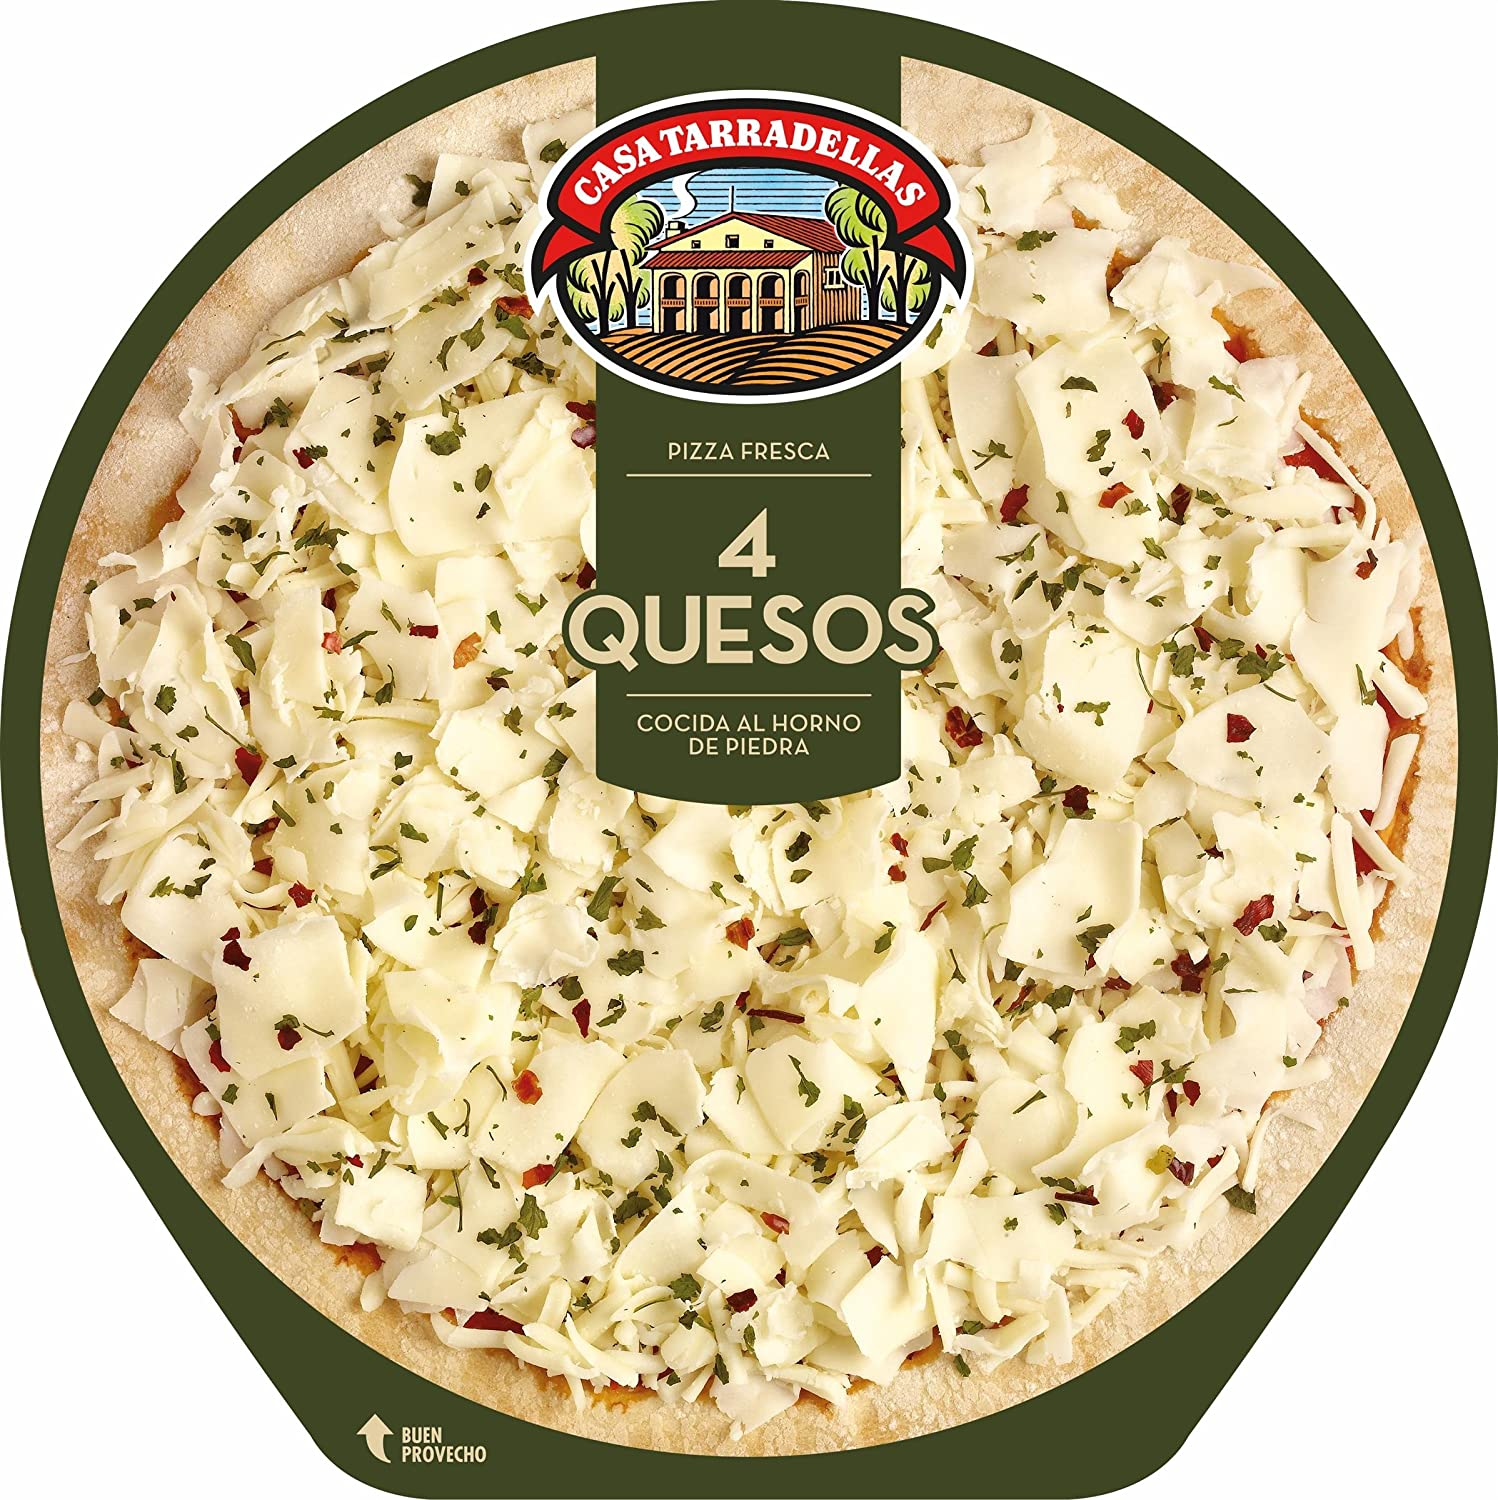 Casa Tarradellas Pizza Fresca 4 Quesos - 390 gr: Amazon.es ...